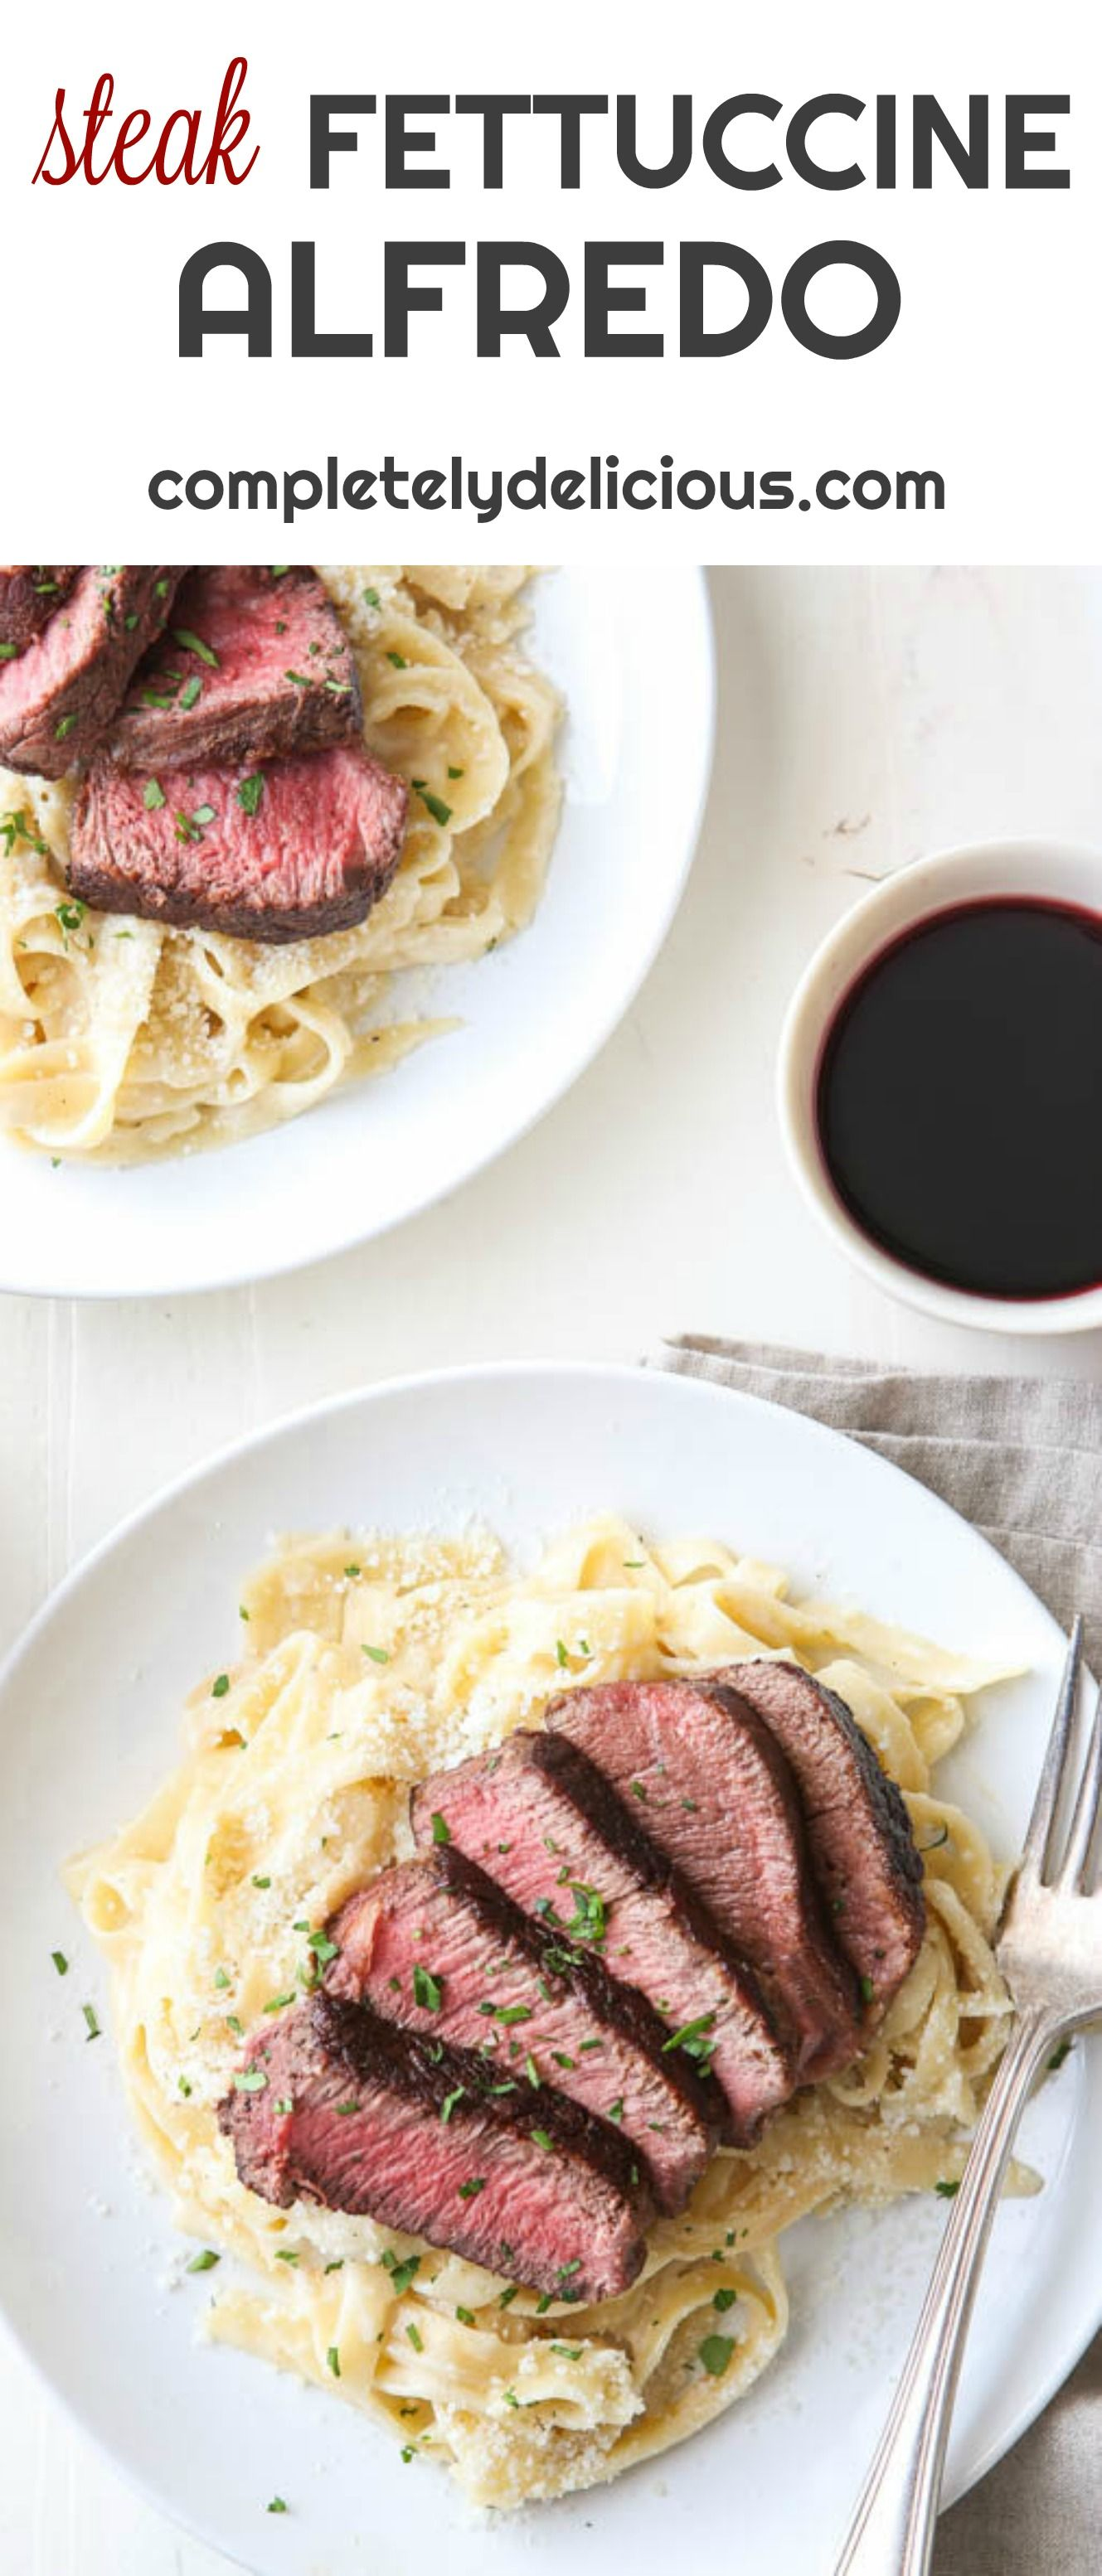 This Steak And Fettuccine Alfredo Is A Simple But Elegant Dinner For Two